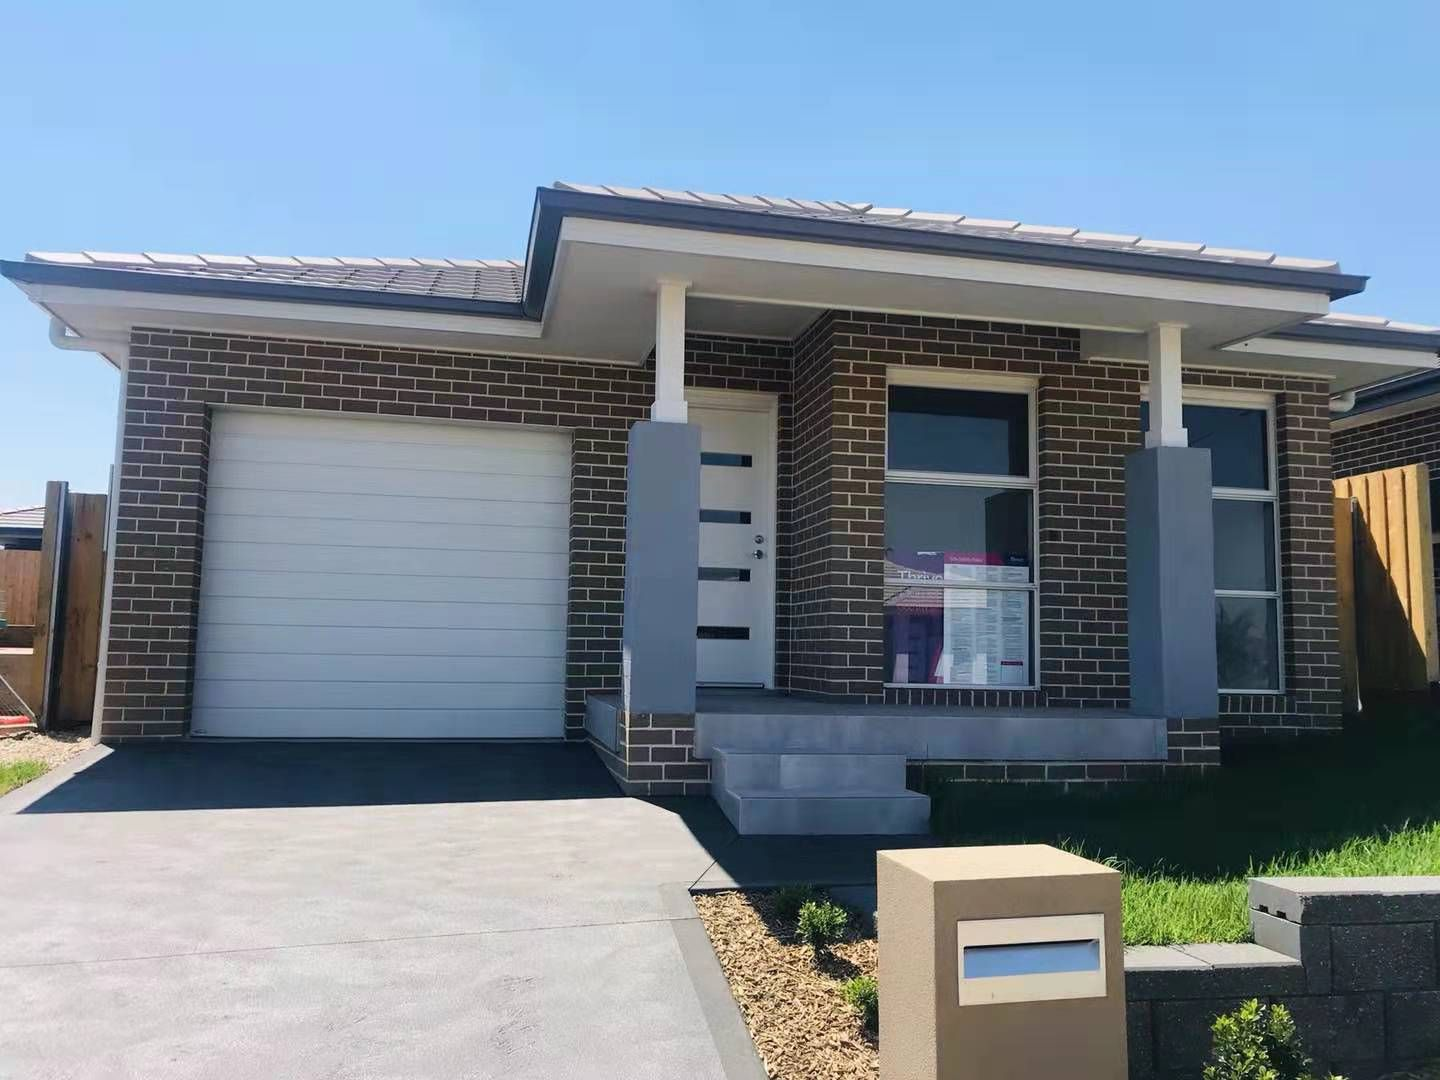 Lot1013, 5 Orion Road, Austral NSW 2179, Image 0